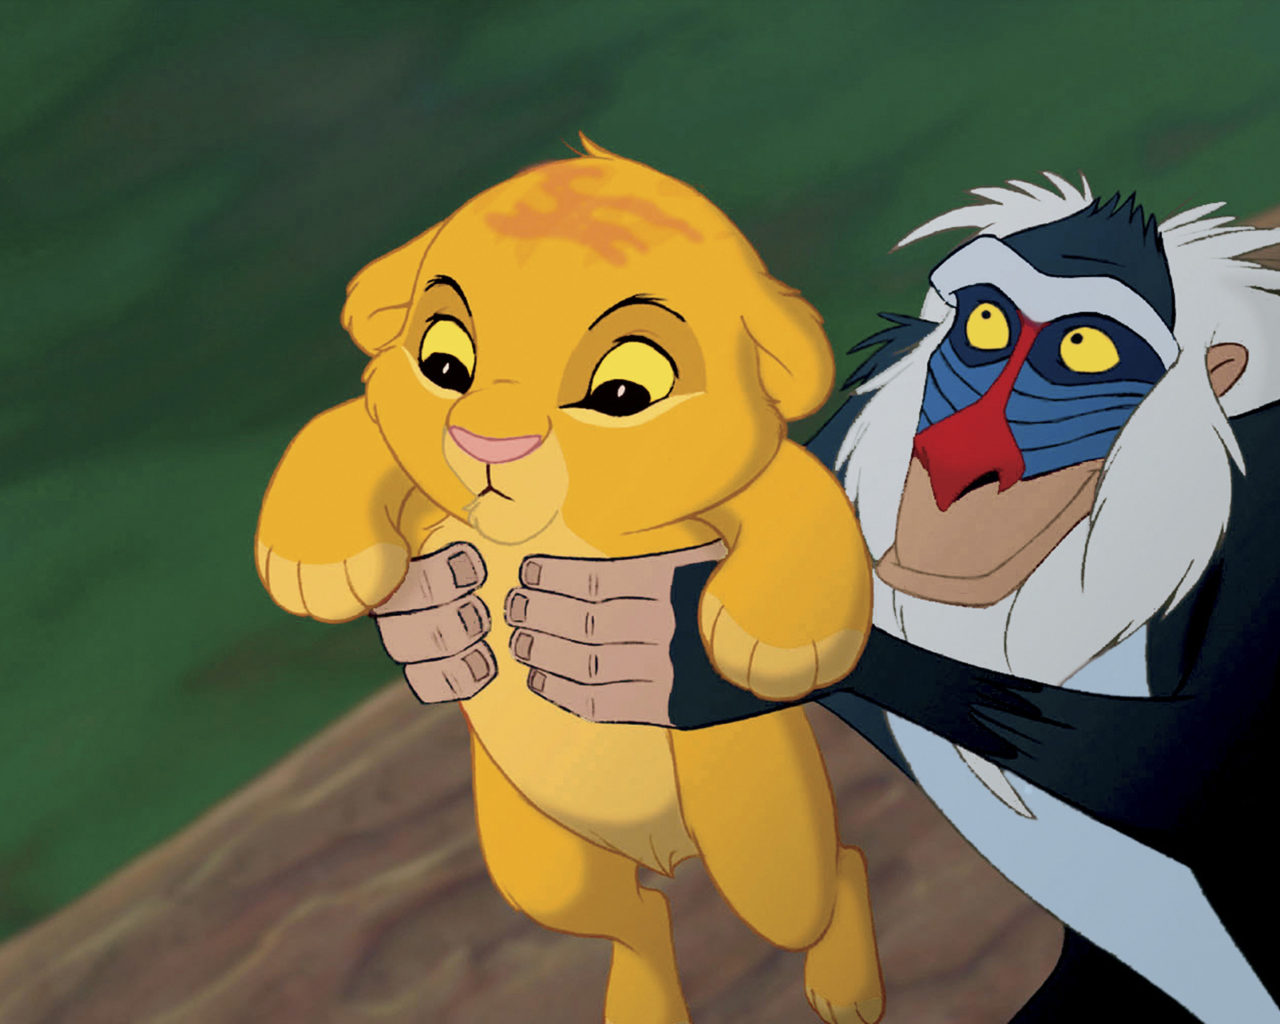 the lion king one by one